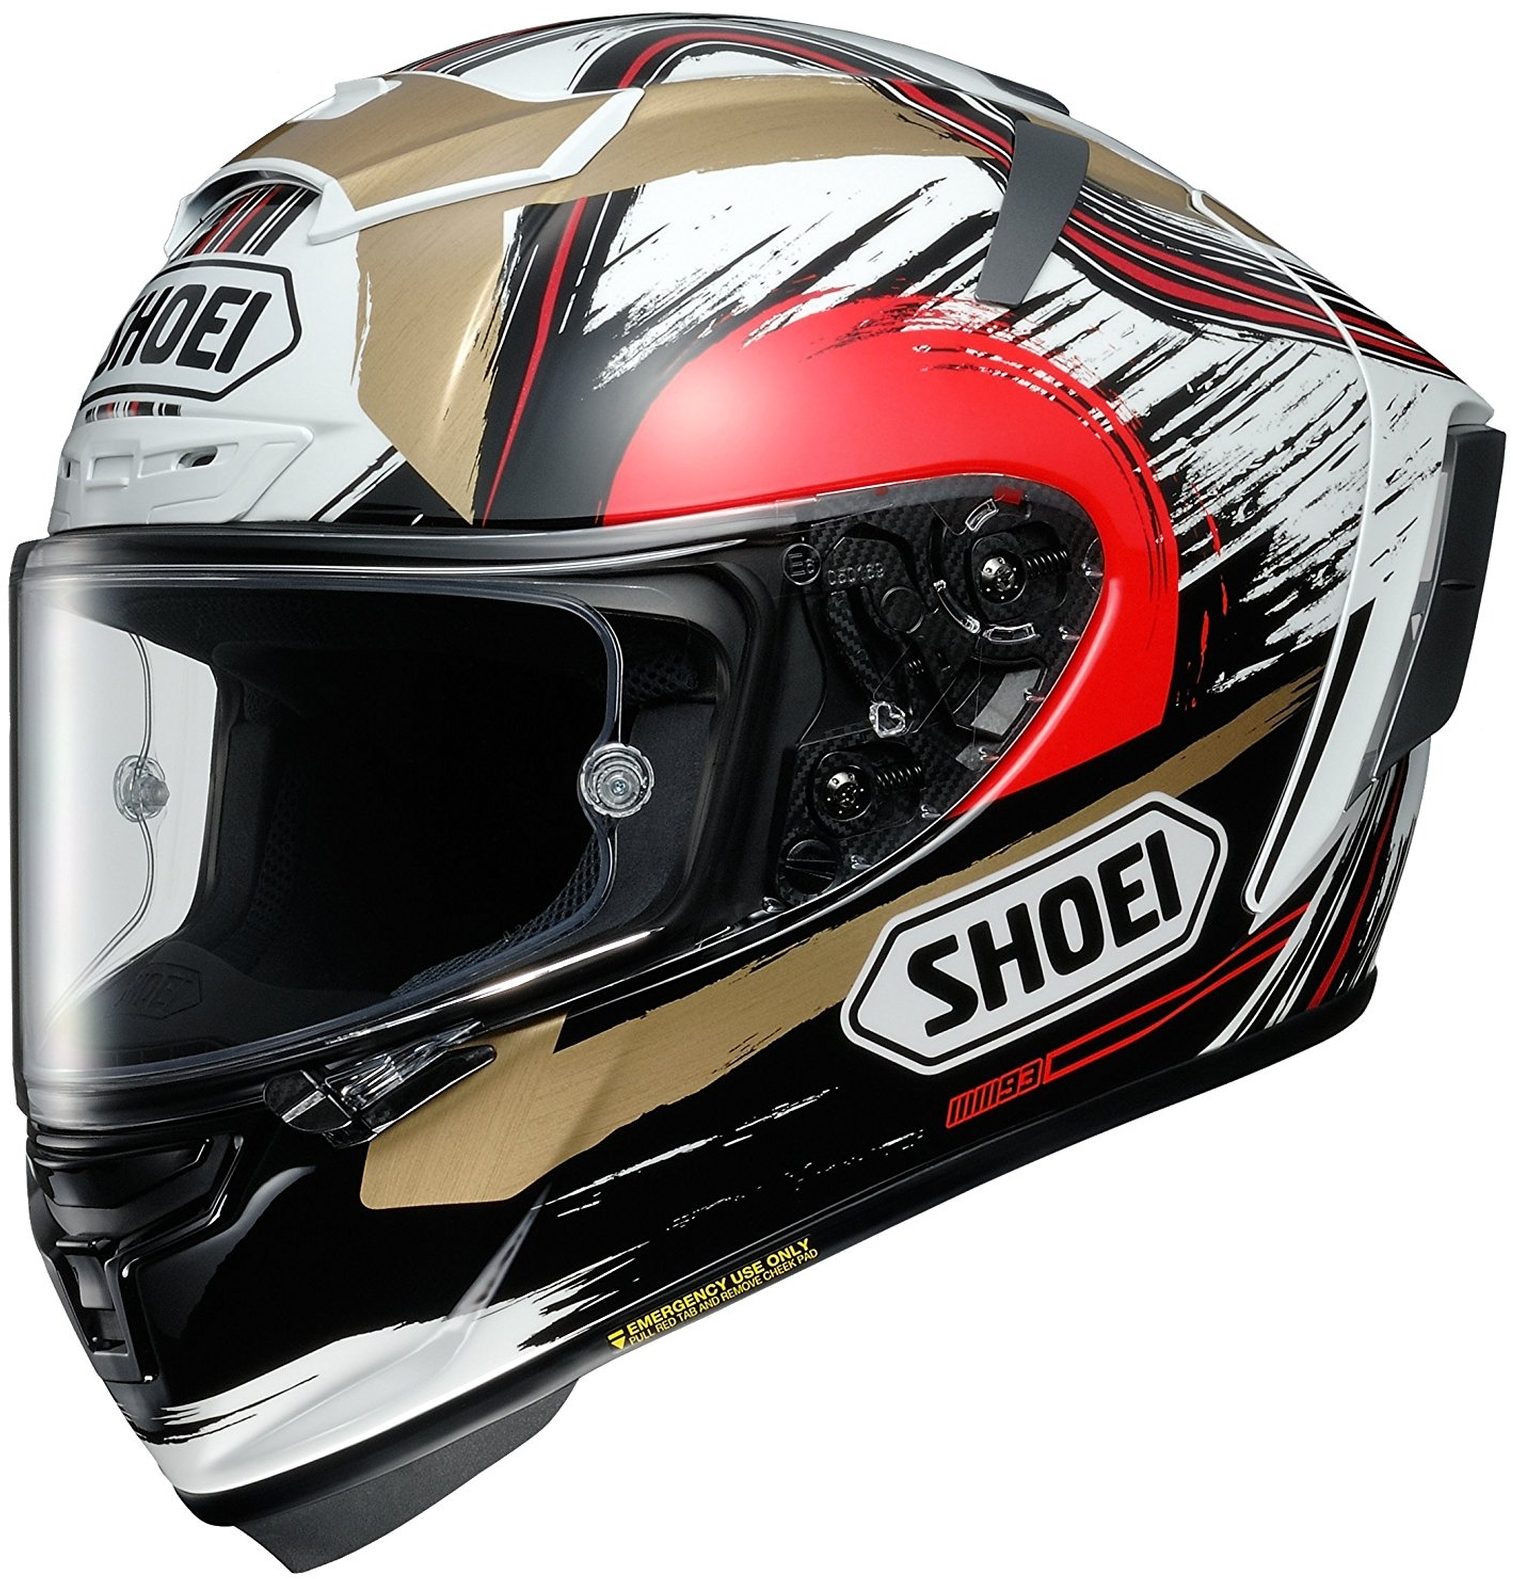 CASCO X-SPIRIT III IN FIBRA